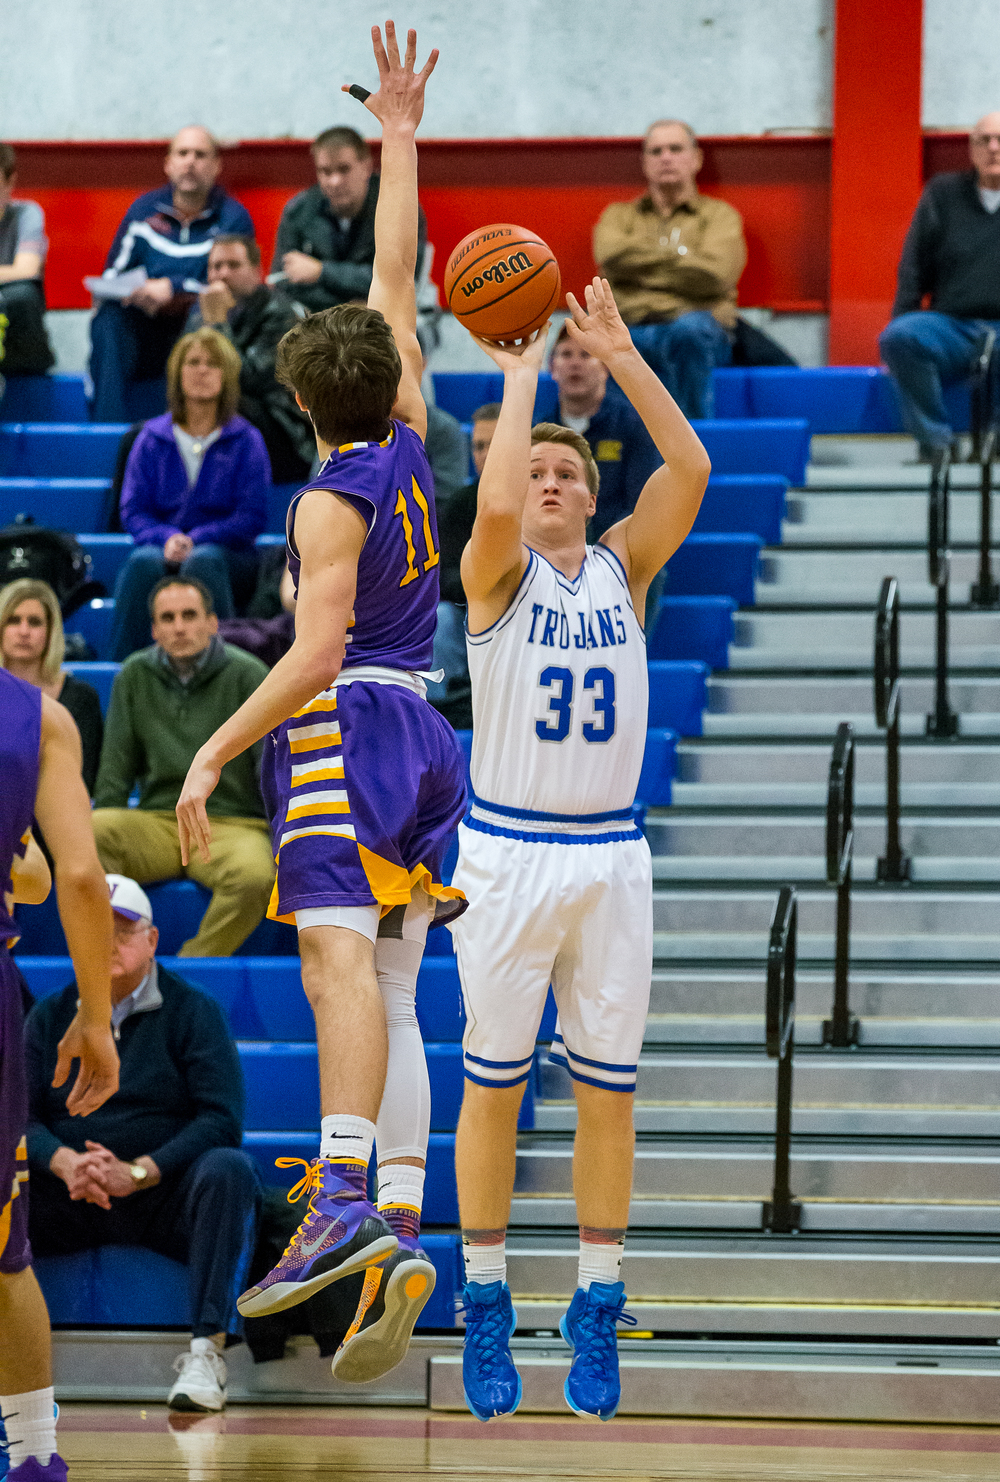 Auburn's Cooper Eaker (33) fires off a shot in front of Williamsville's Jack Zibutis (11) in the first half during the Sangamon County Tournament at  Lincoln Land Community College's Cass Gymnasium, Thursday, Jan. 15, 2015, in Springfield, Ill. Justin L. Fowler/The State Journal-Register